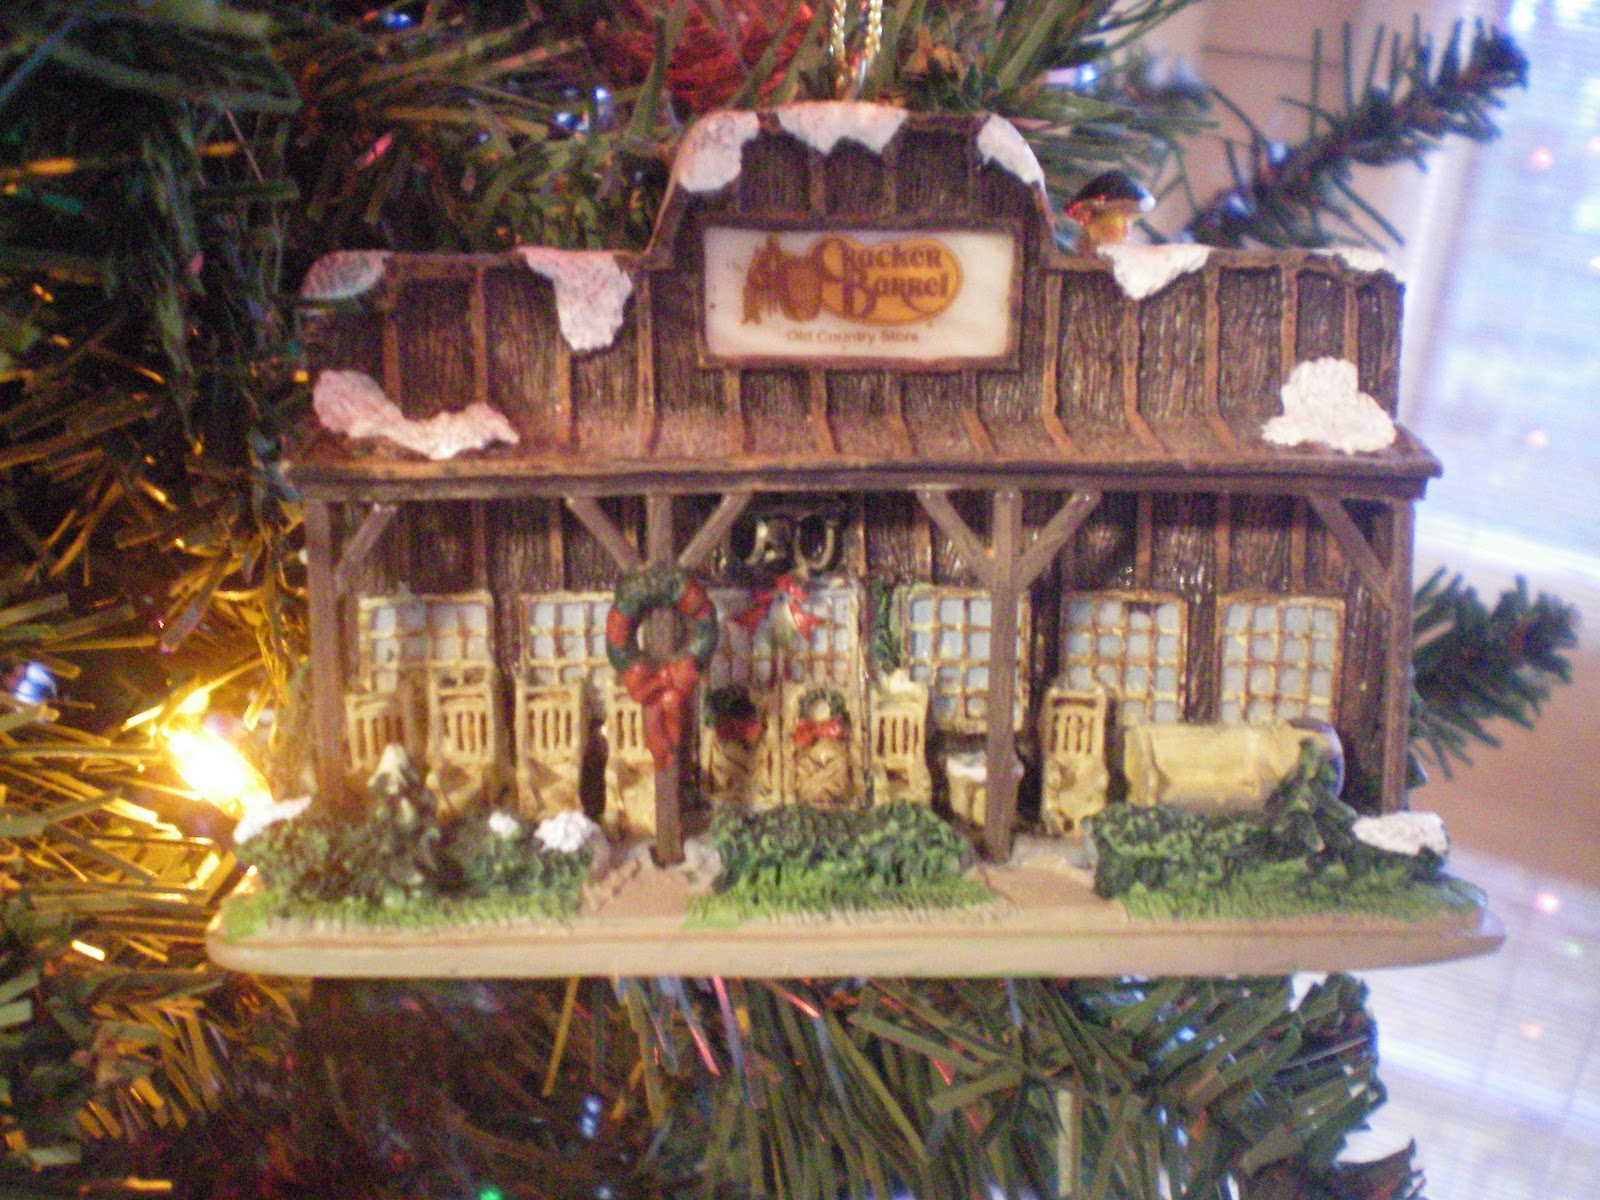 if you live in the south you need a cracker barrel ornament for your tree it is a must have lol